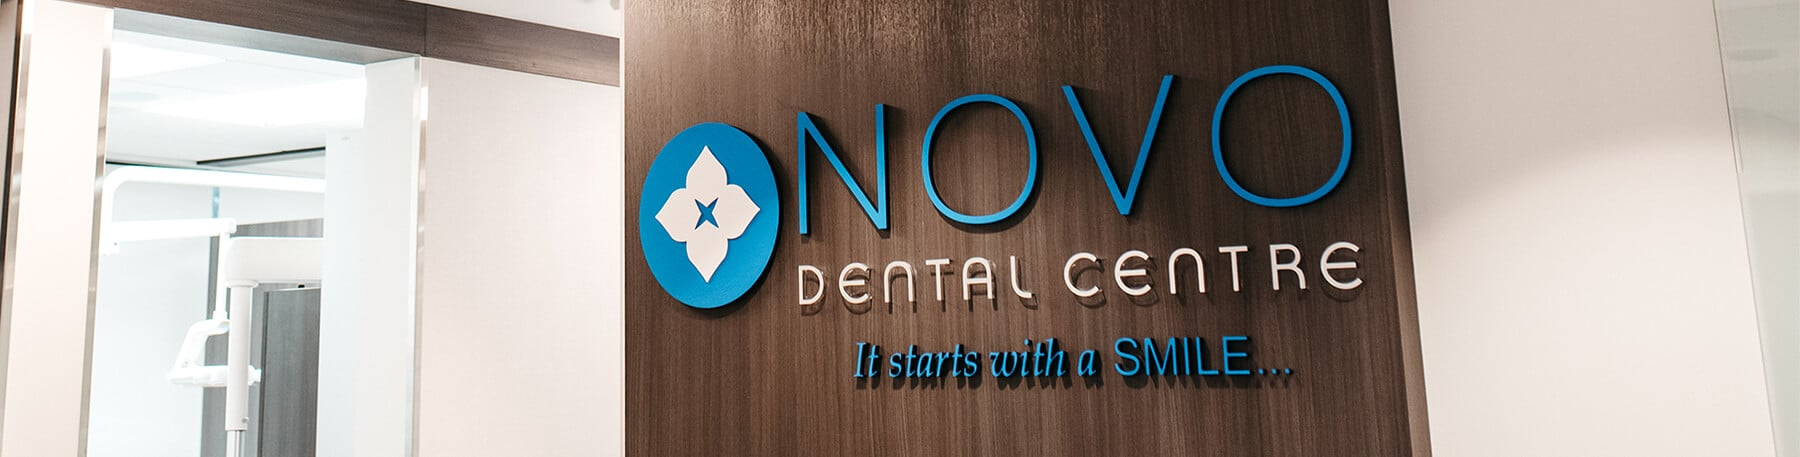 NOVO Dental Centre sign in new office